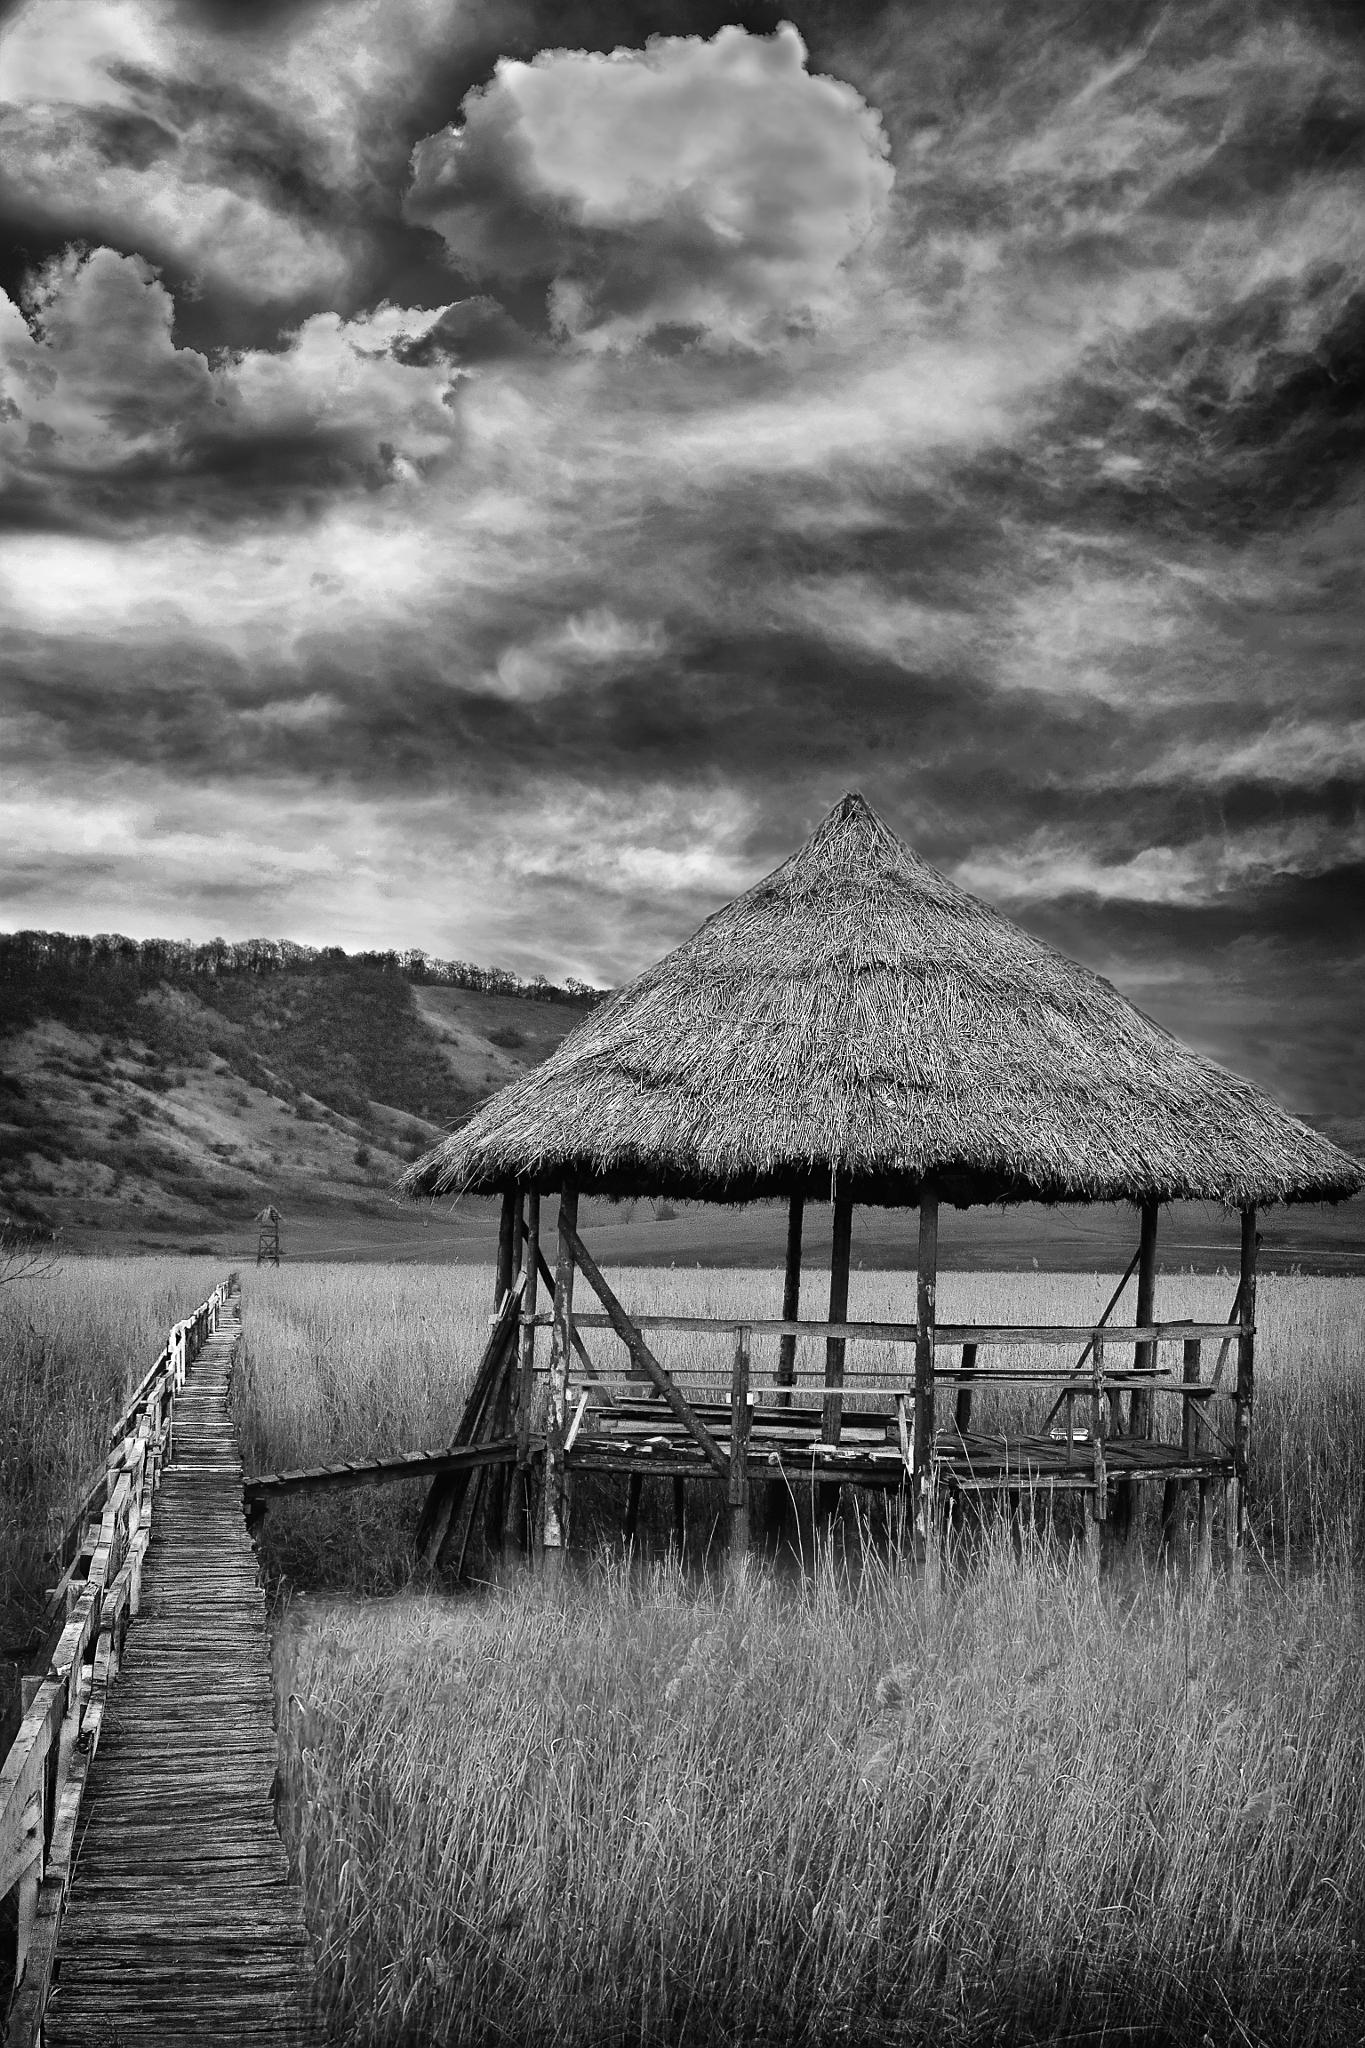 Through the Marshes by Flaviu Salagean